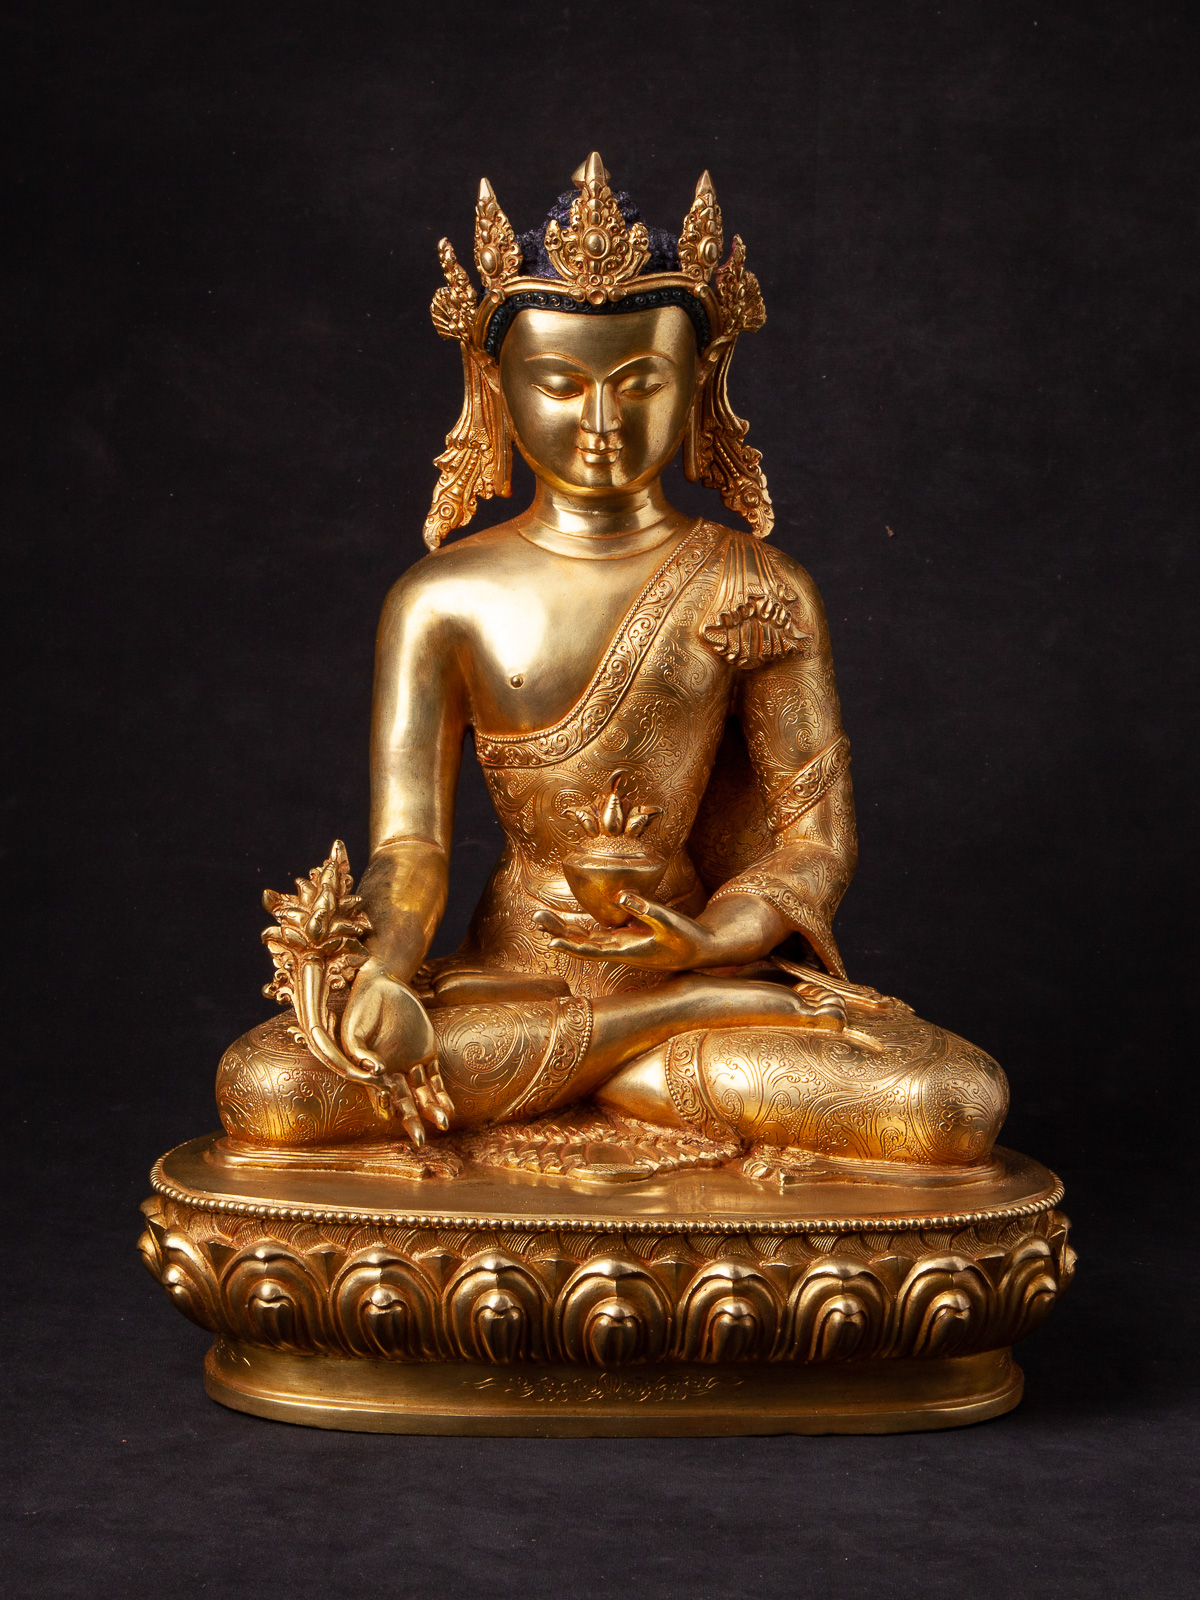 High quality bronze Medicine Buddha statue from Nepal